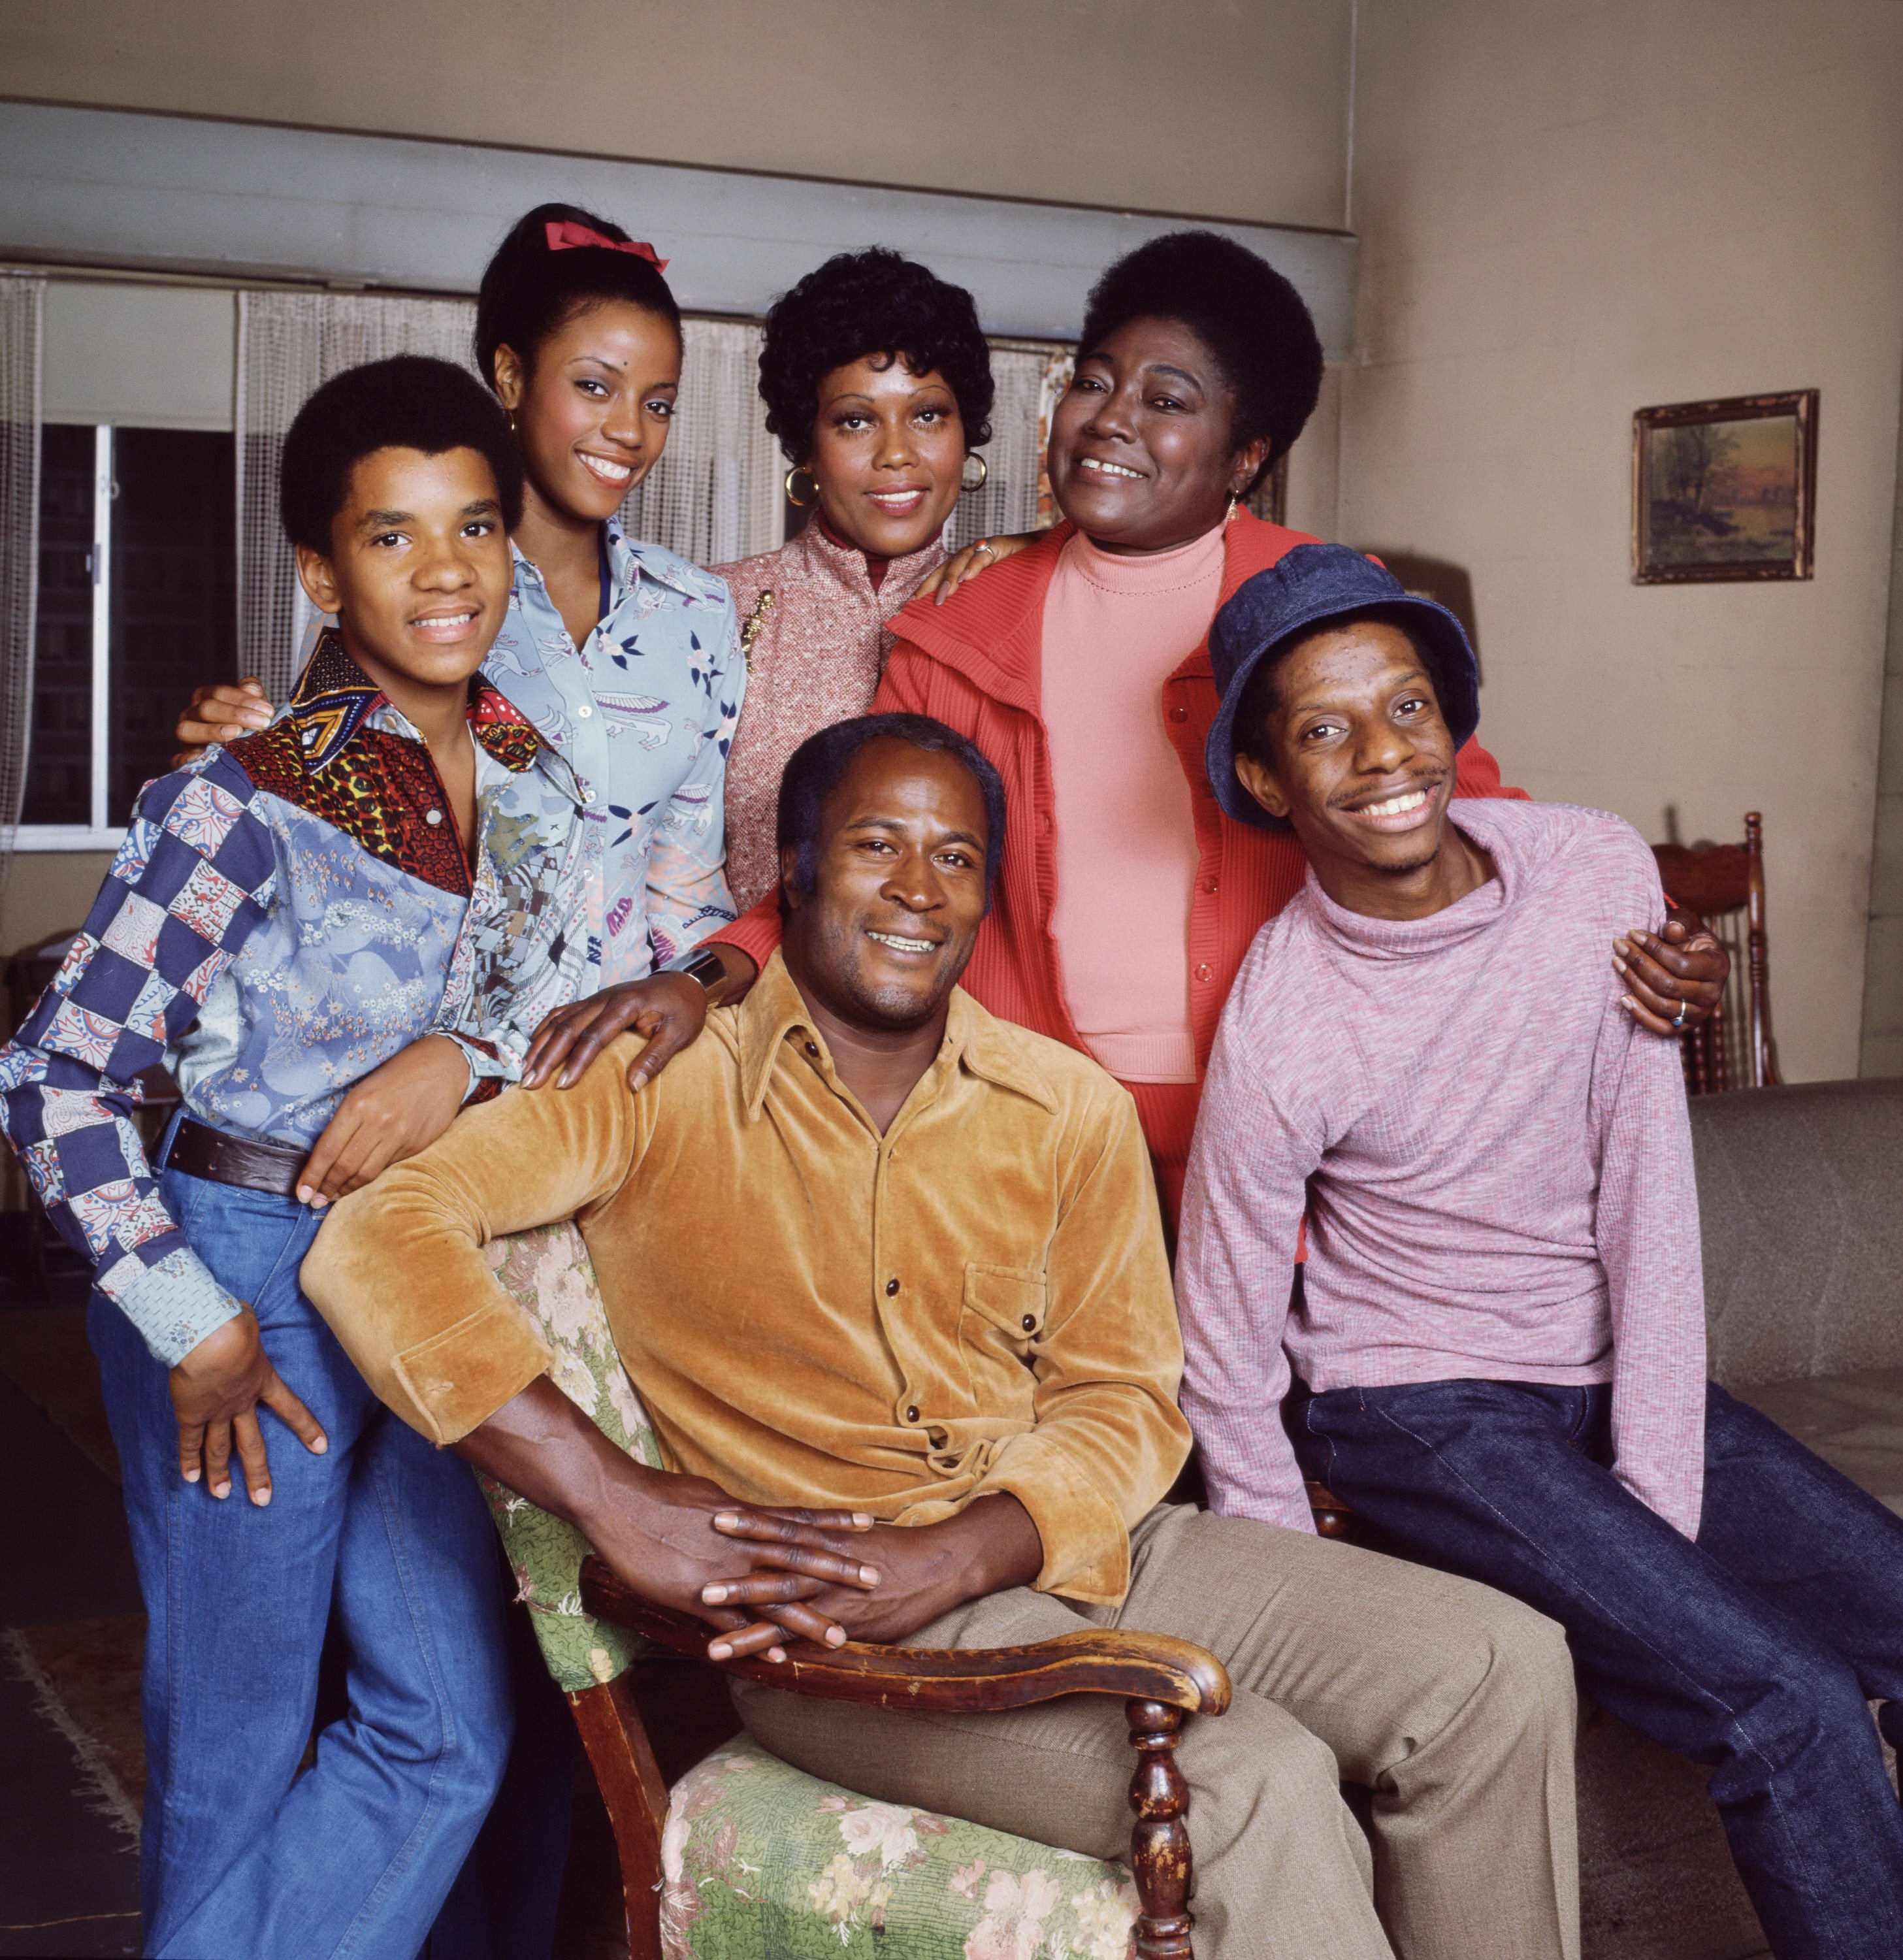 Portrait of the cast of the television show 'Good Times,' Los Angeles, California, September 29, 1977 | Photo: Getty Images